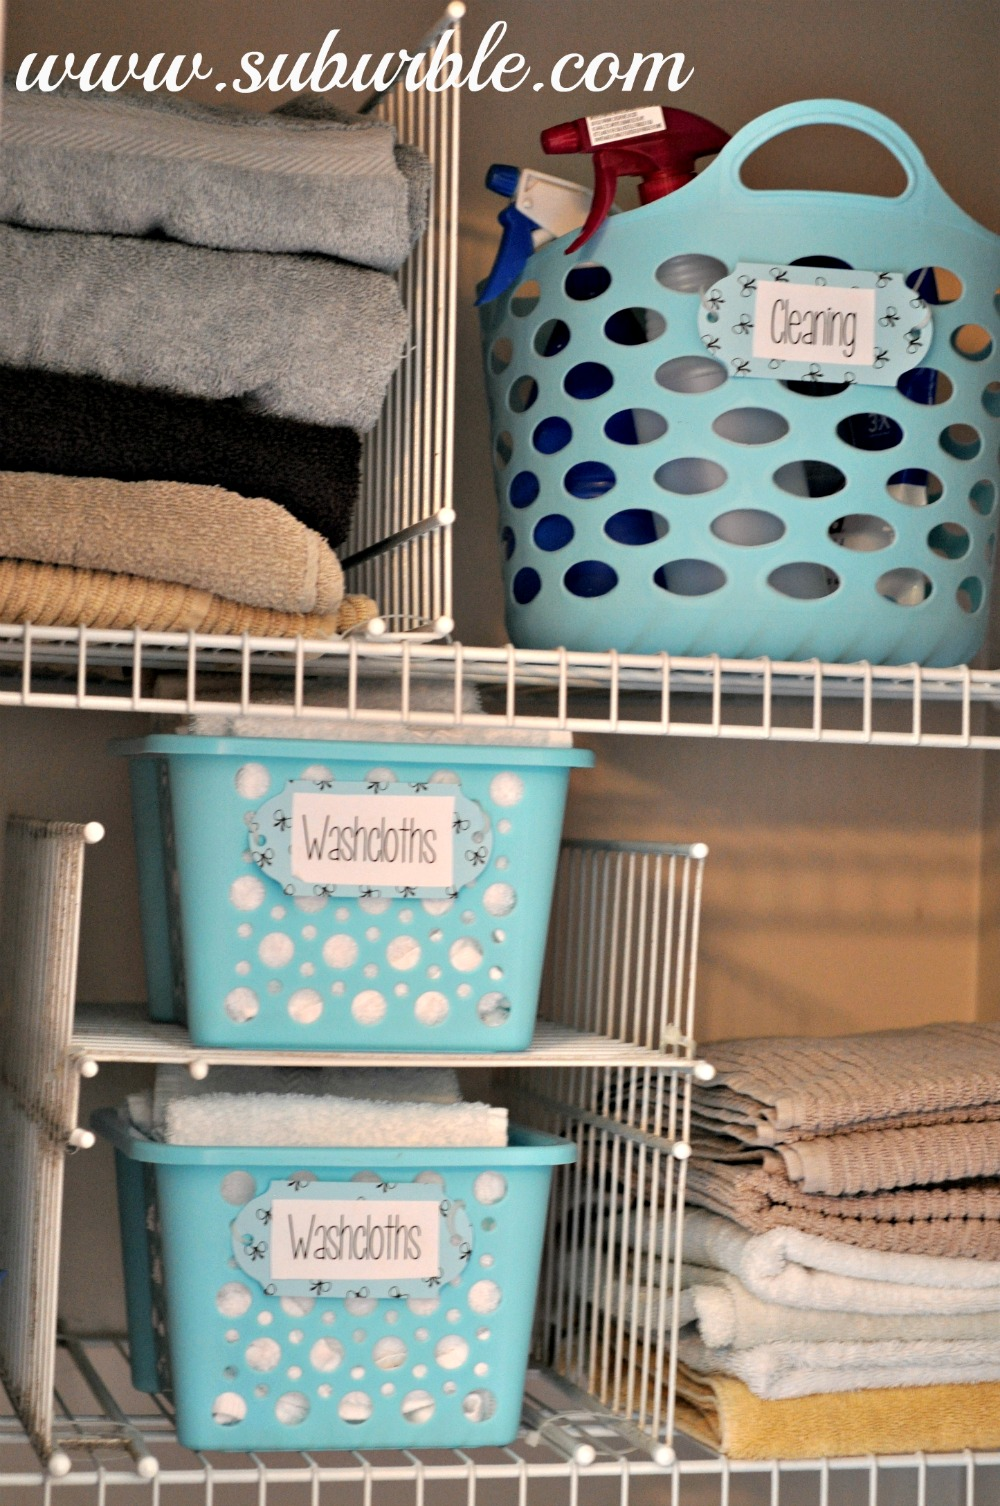 linen closet organization made easy with adjustable shelving